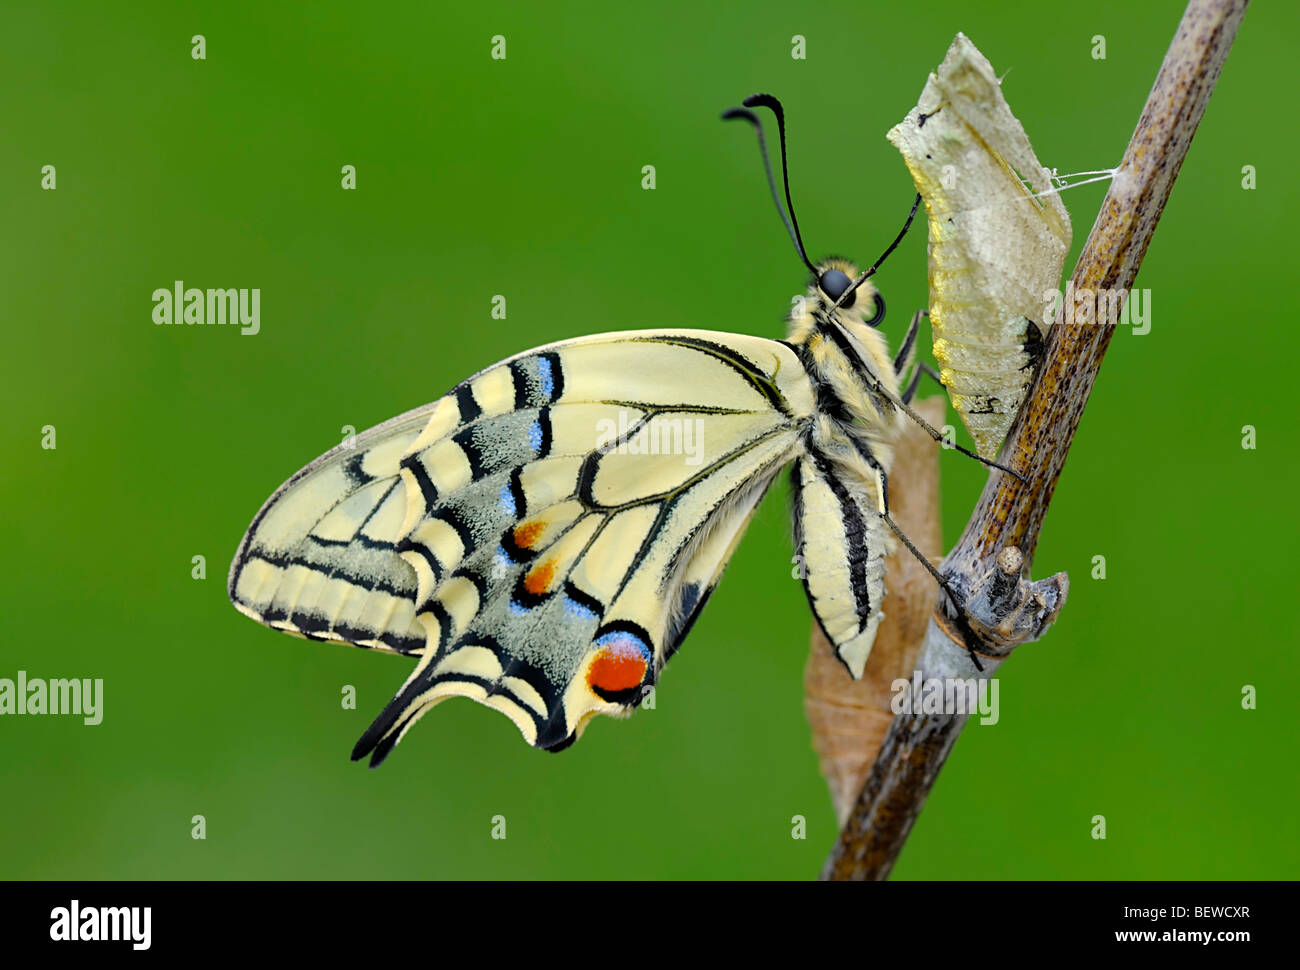 Newly hatched Old World Swallowtail (Papilio machaon) sitting on stalk, side view - Stock Image